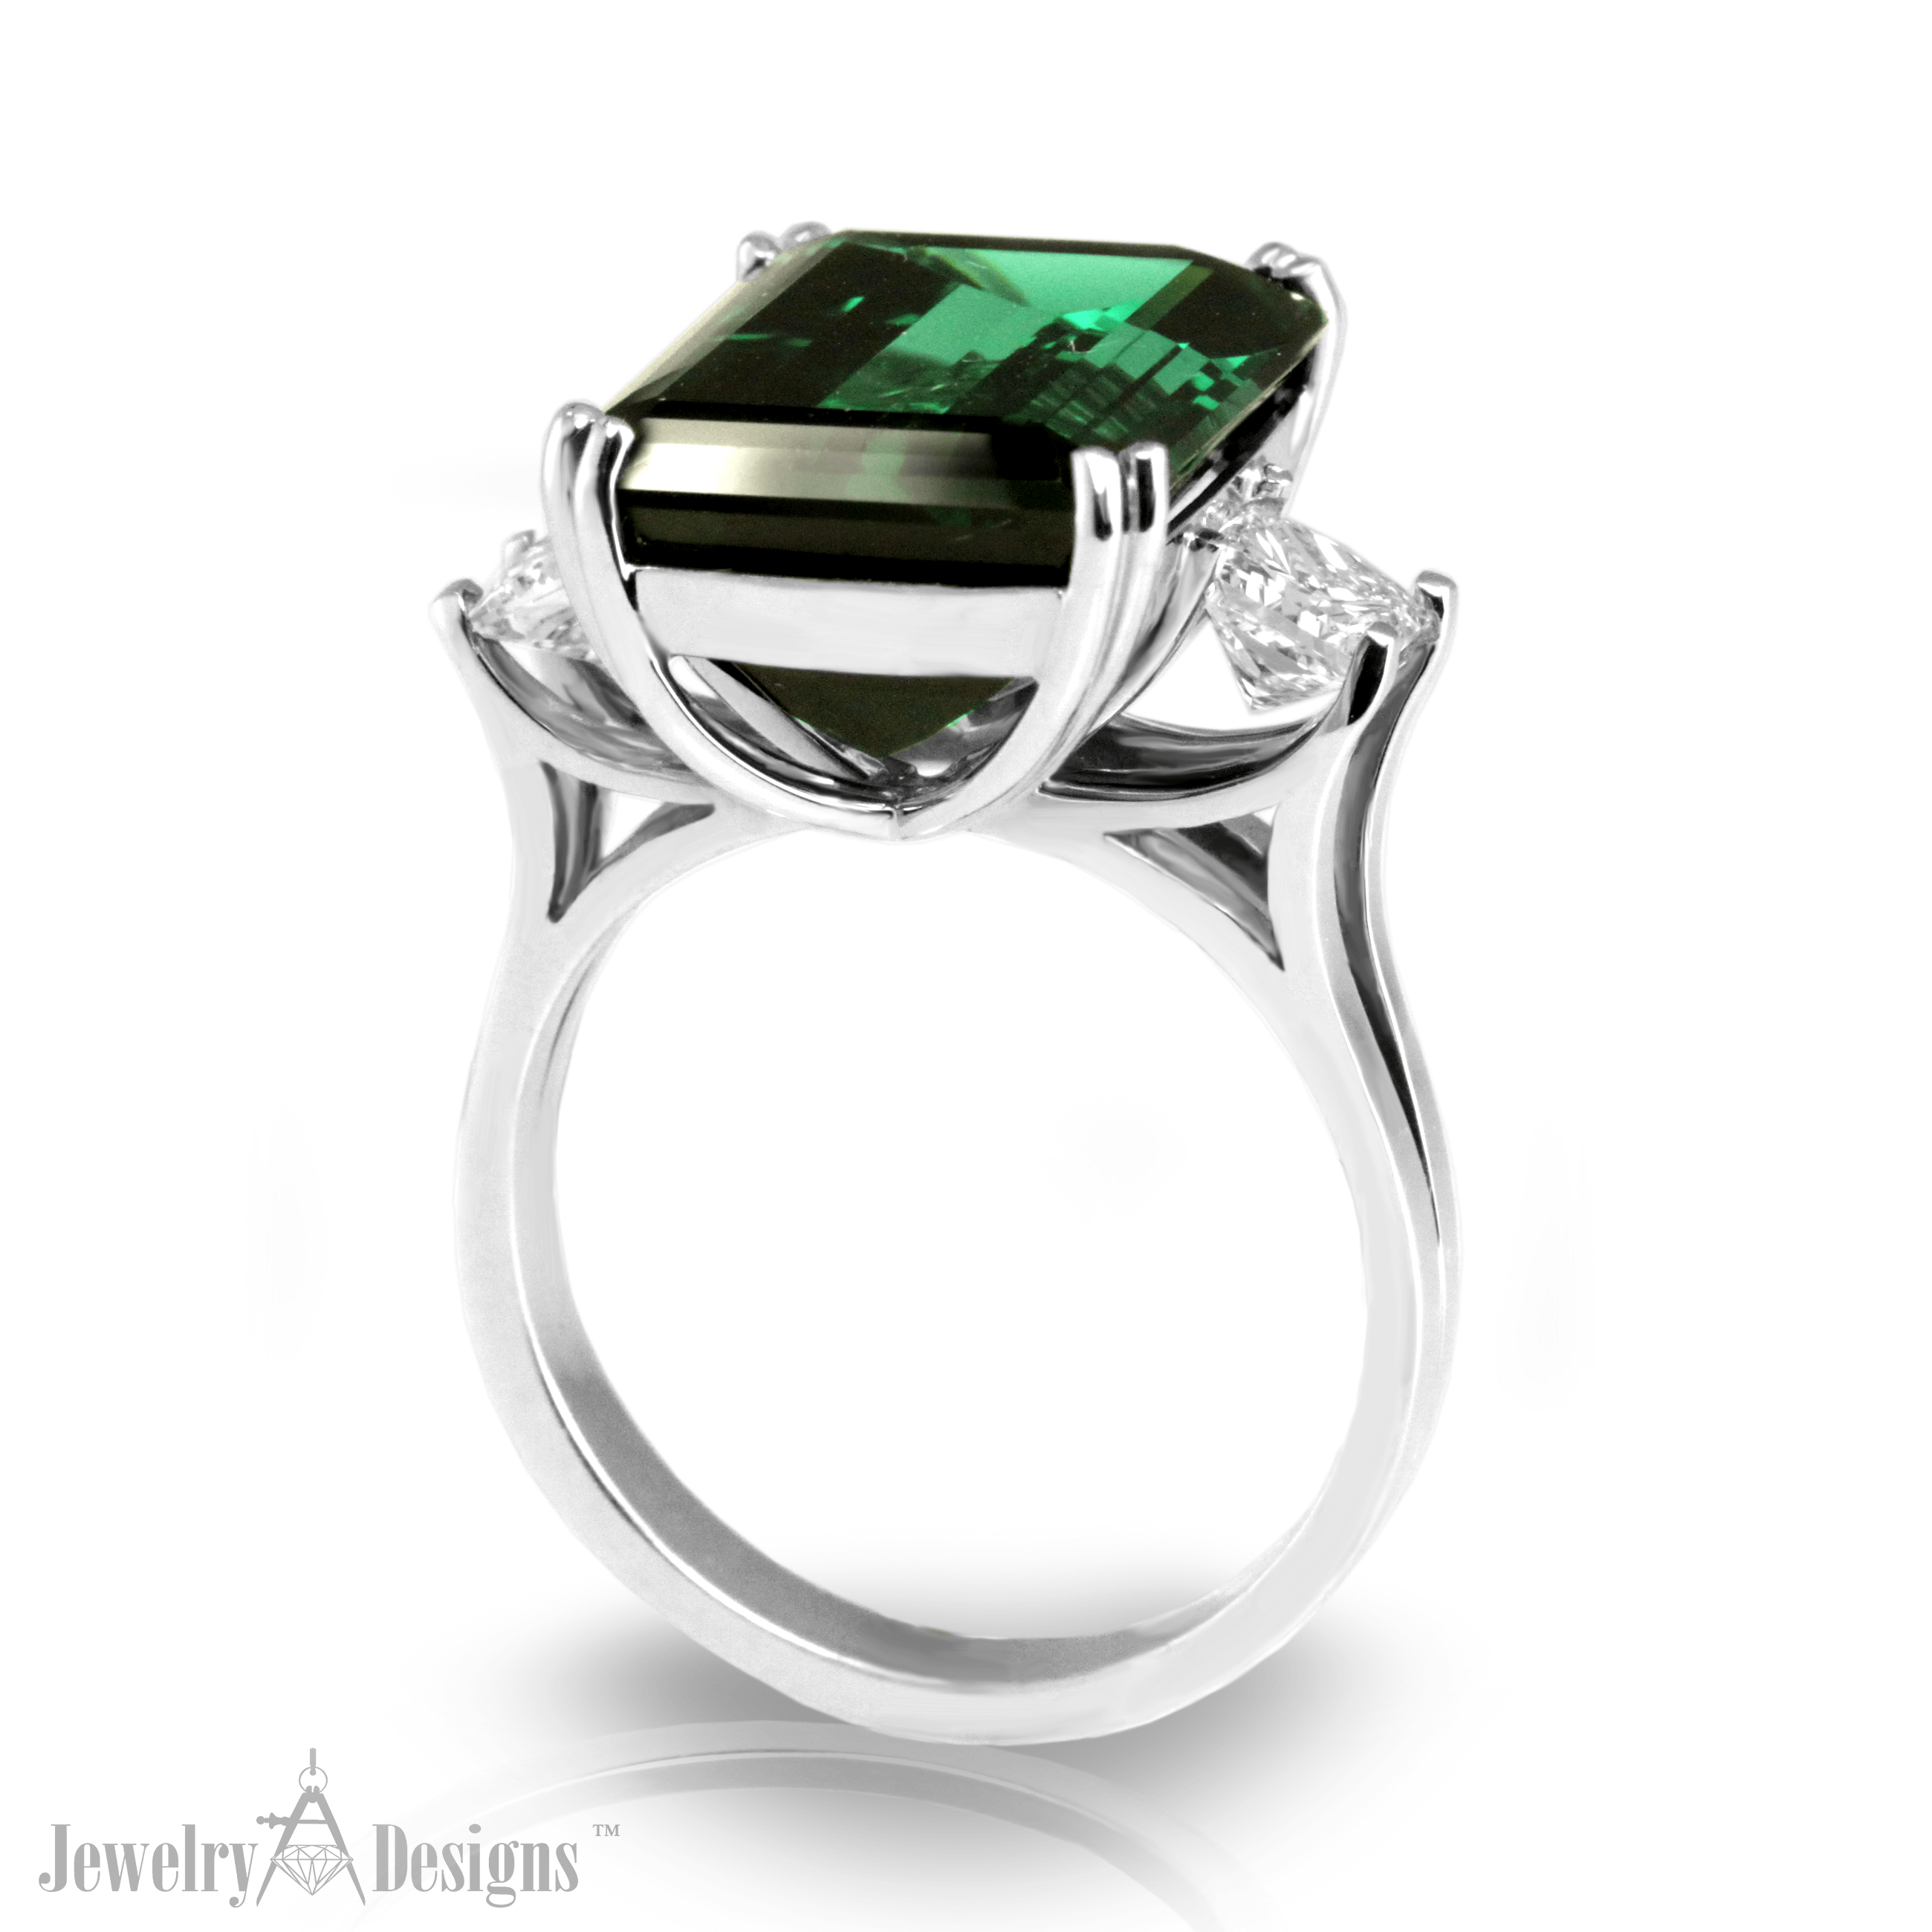 CC111-1-H Emerald Cut Green Tourmaline Ring